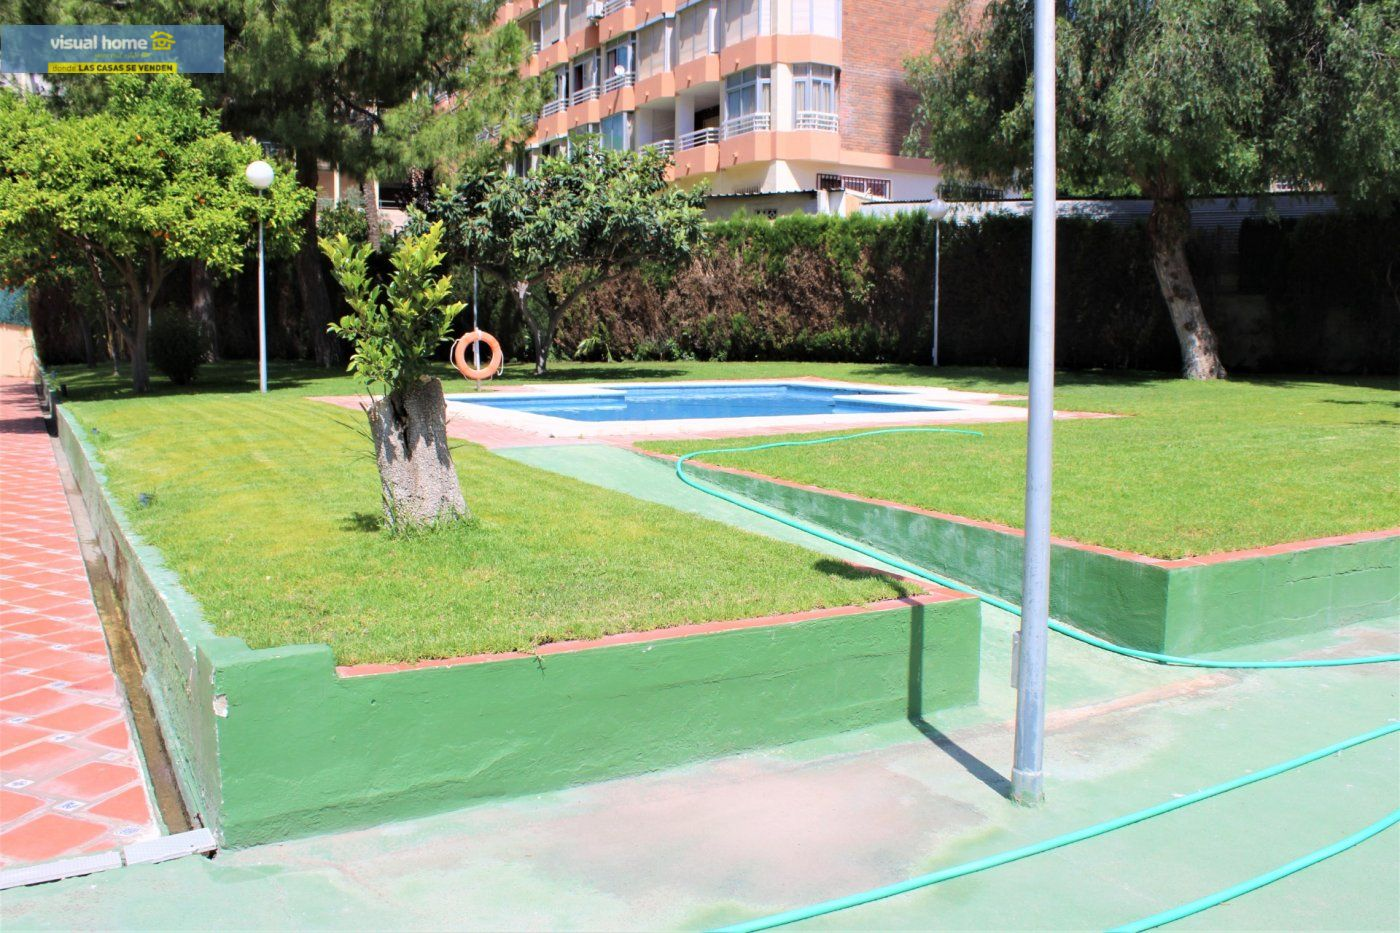 APARTAMENTO CON VISTAS AL MAR IDEAL PARA VACACIONES EN ZONA LEVANTE! PARKING Y PISCINA!!! 3